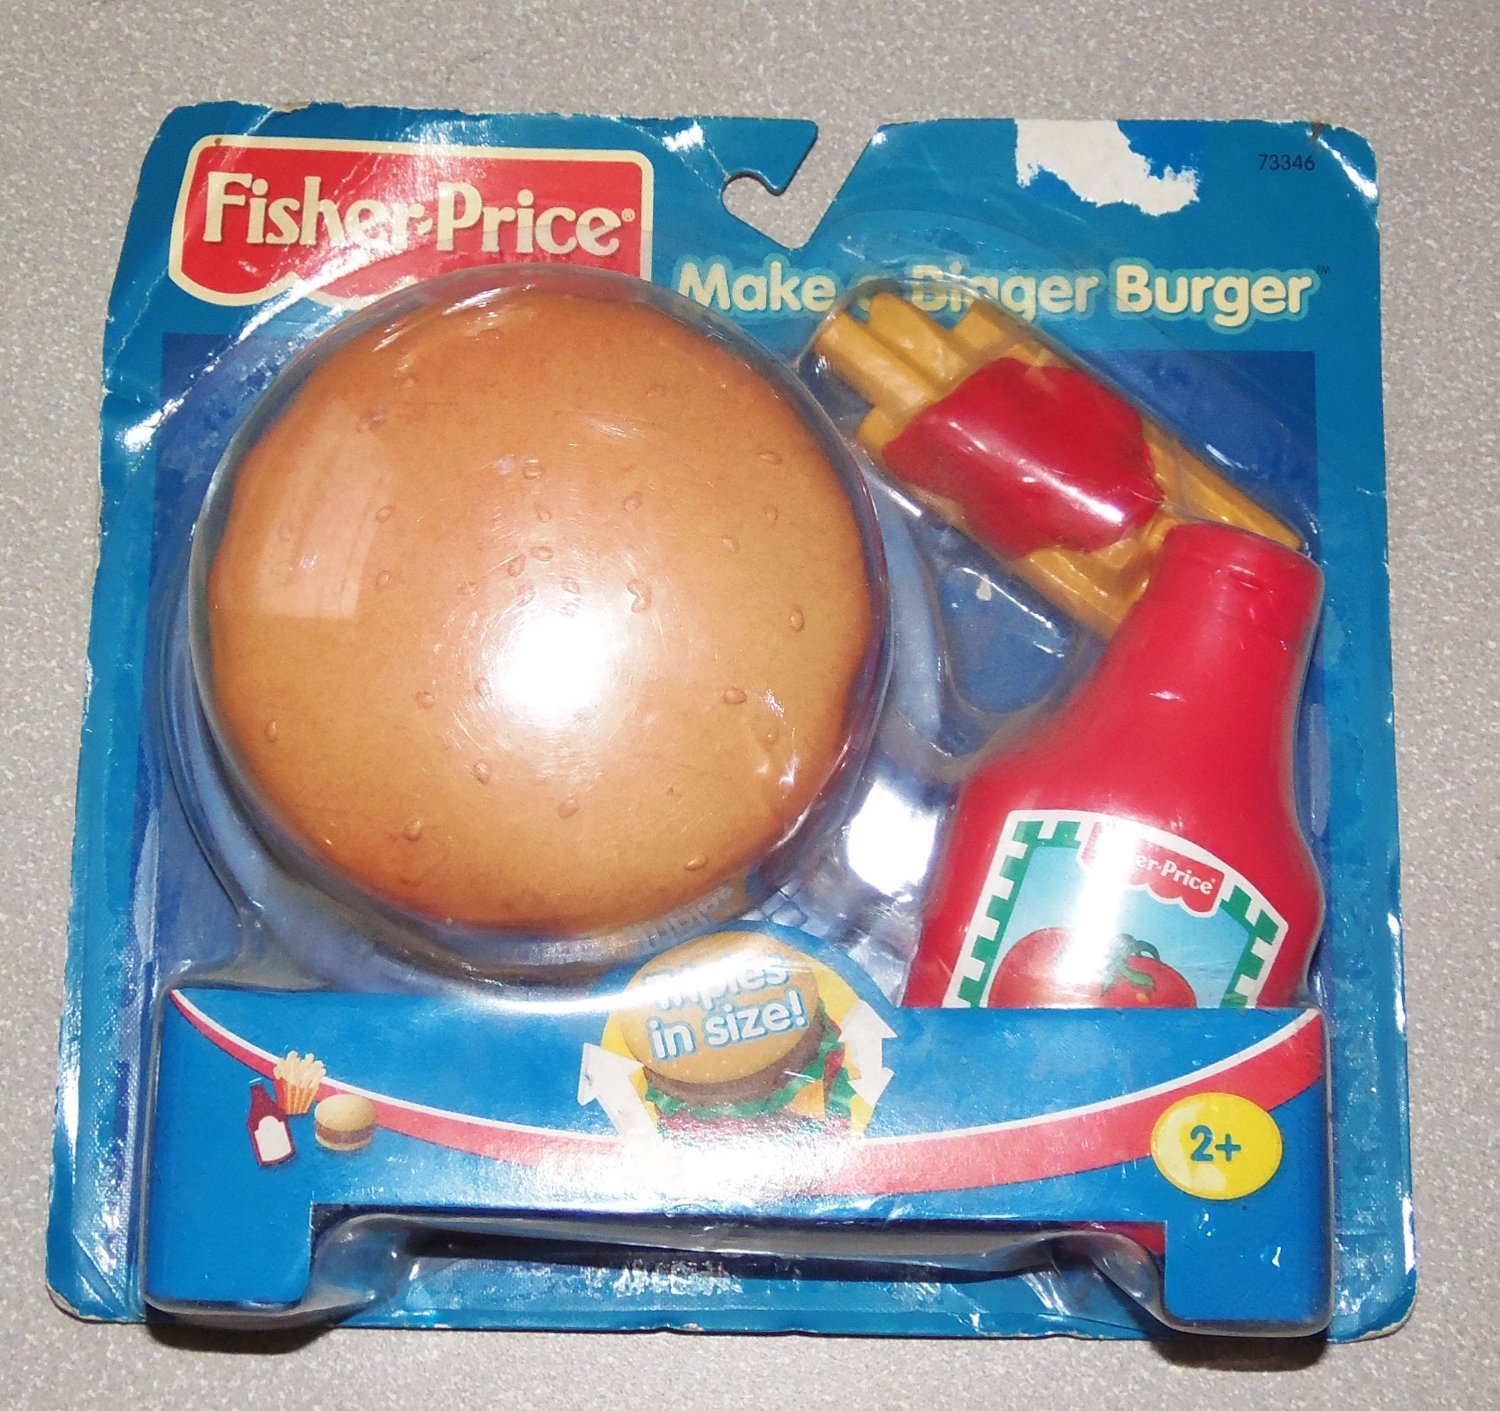 Fisher Price Make a Bigger Burger Mini Meal Play Food Set